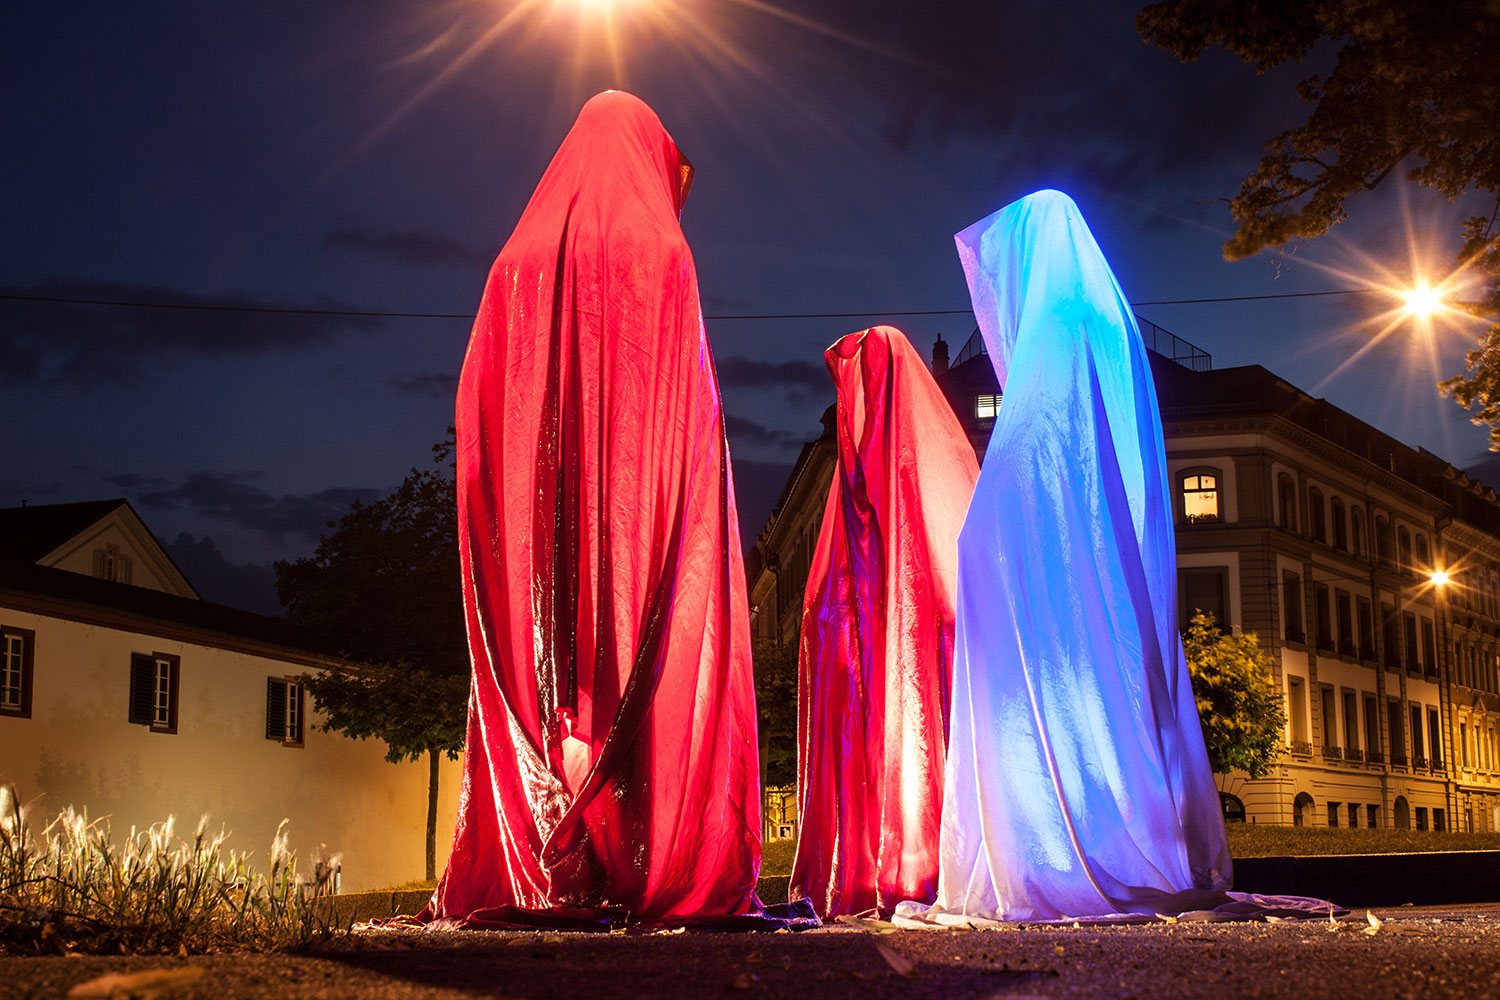 highlights-public-artbasel-scope-art-show-guardians-of-time-manfred-kielnhofer-steinreich-contemporary-art-sculpture-tour-art parcours 1497